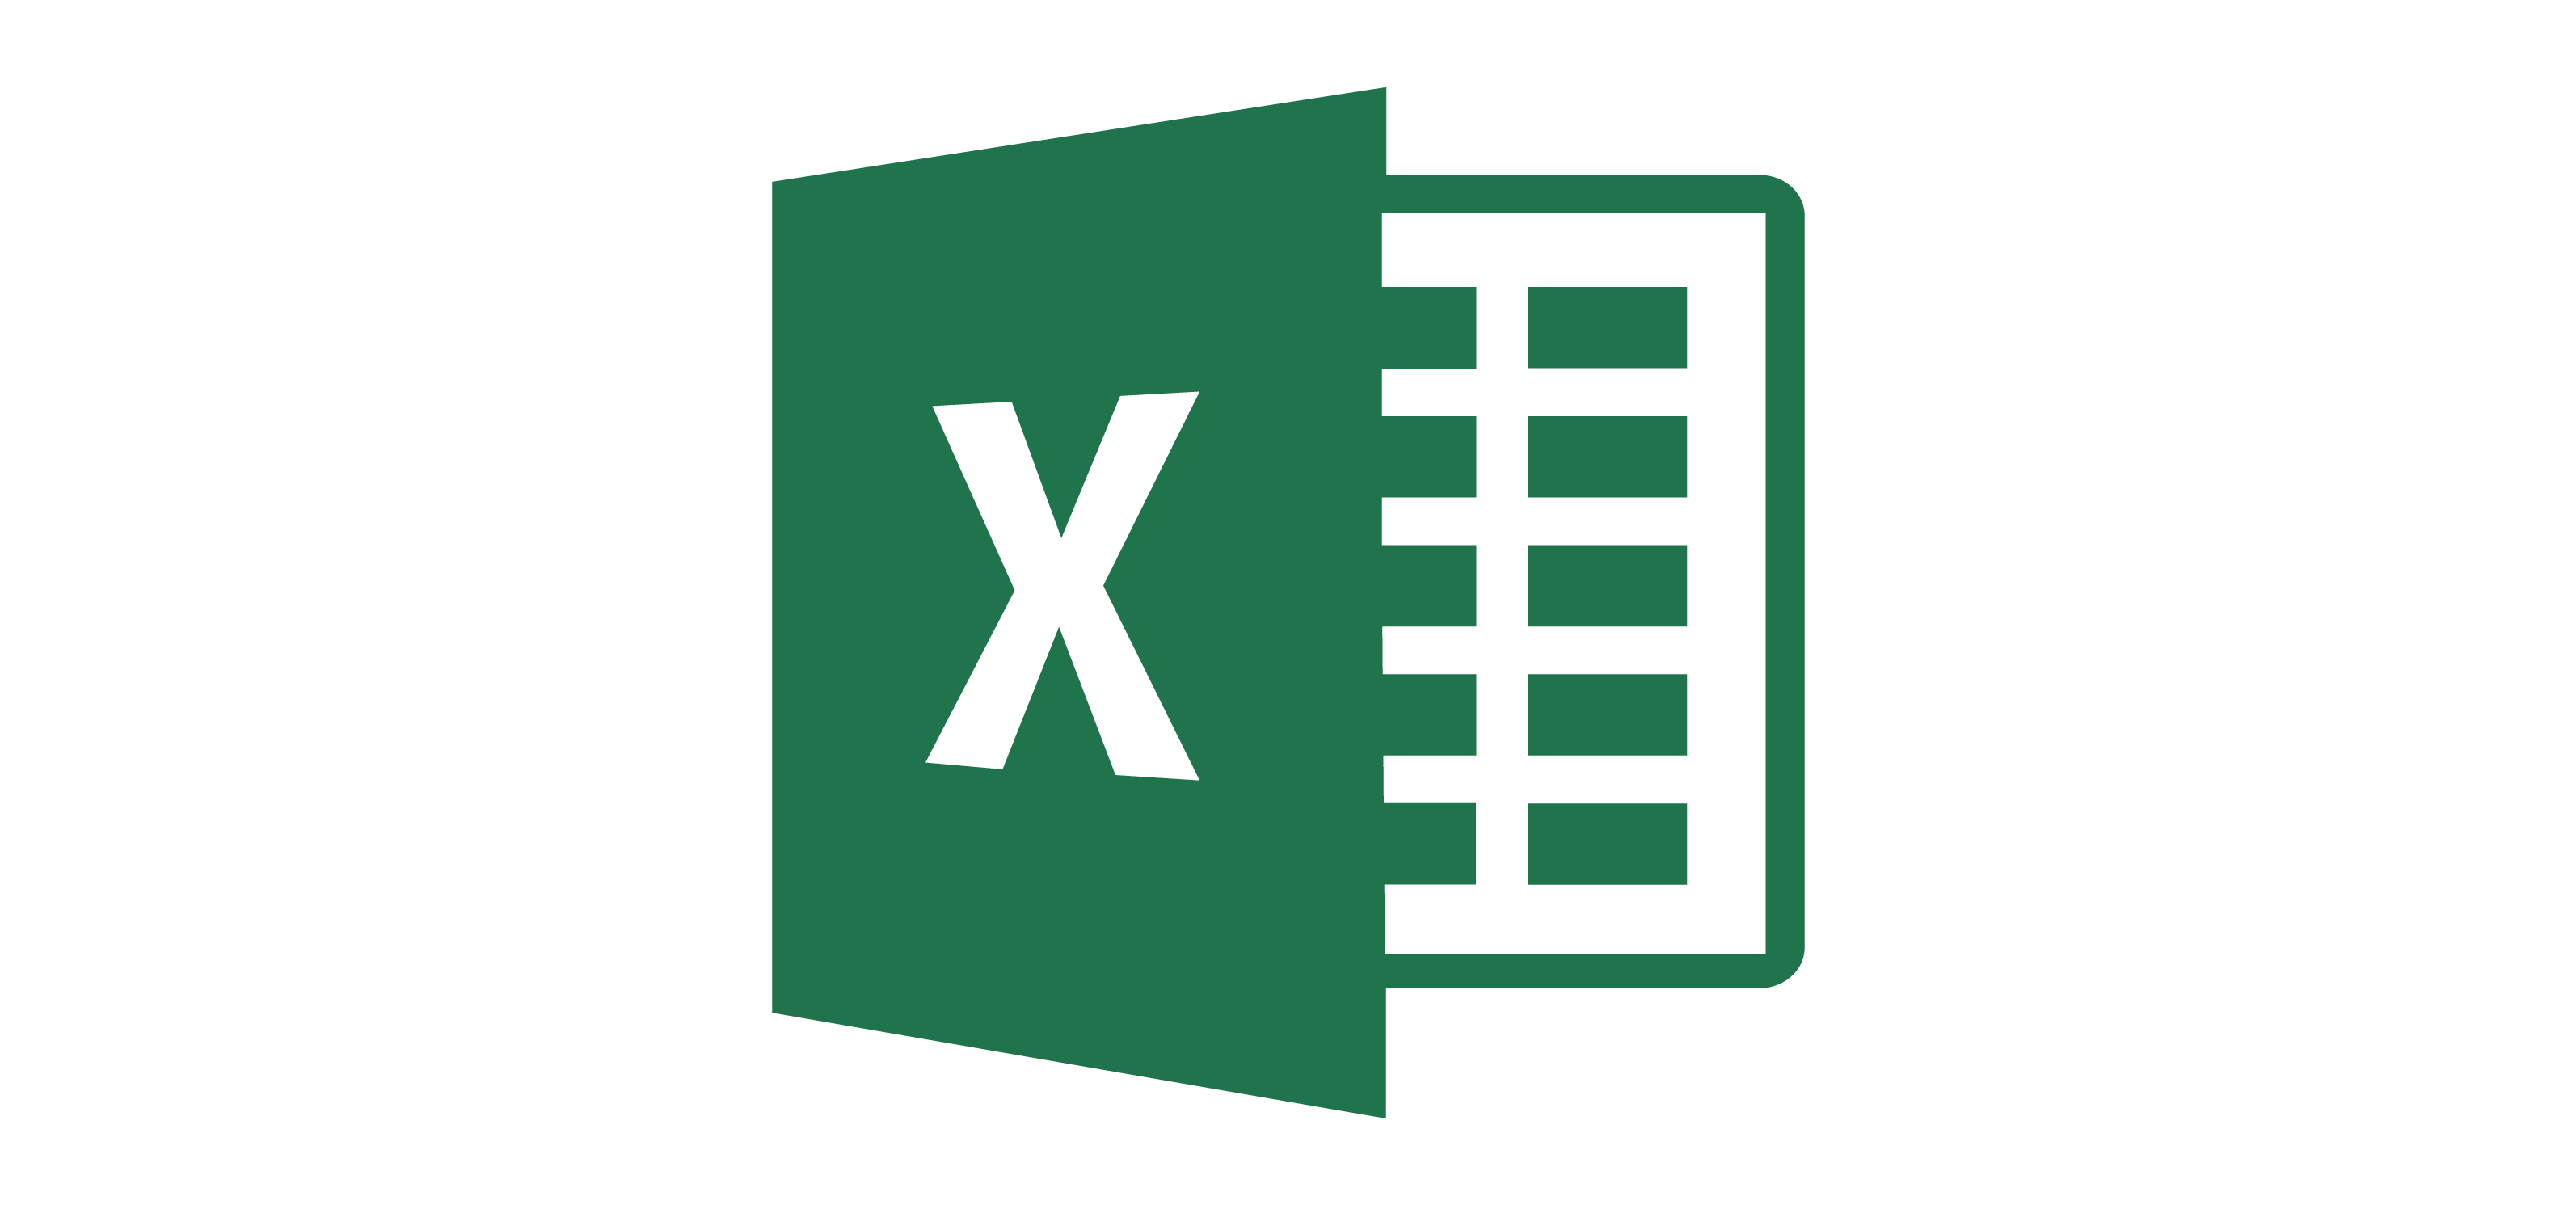 Library Of Microsoft Excel Icon Clipart Black And White Library